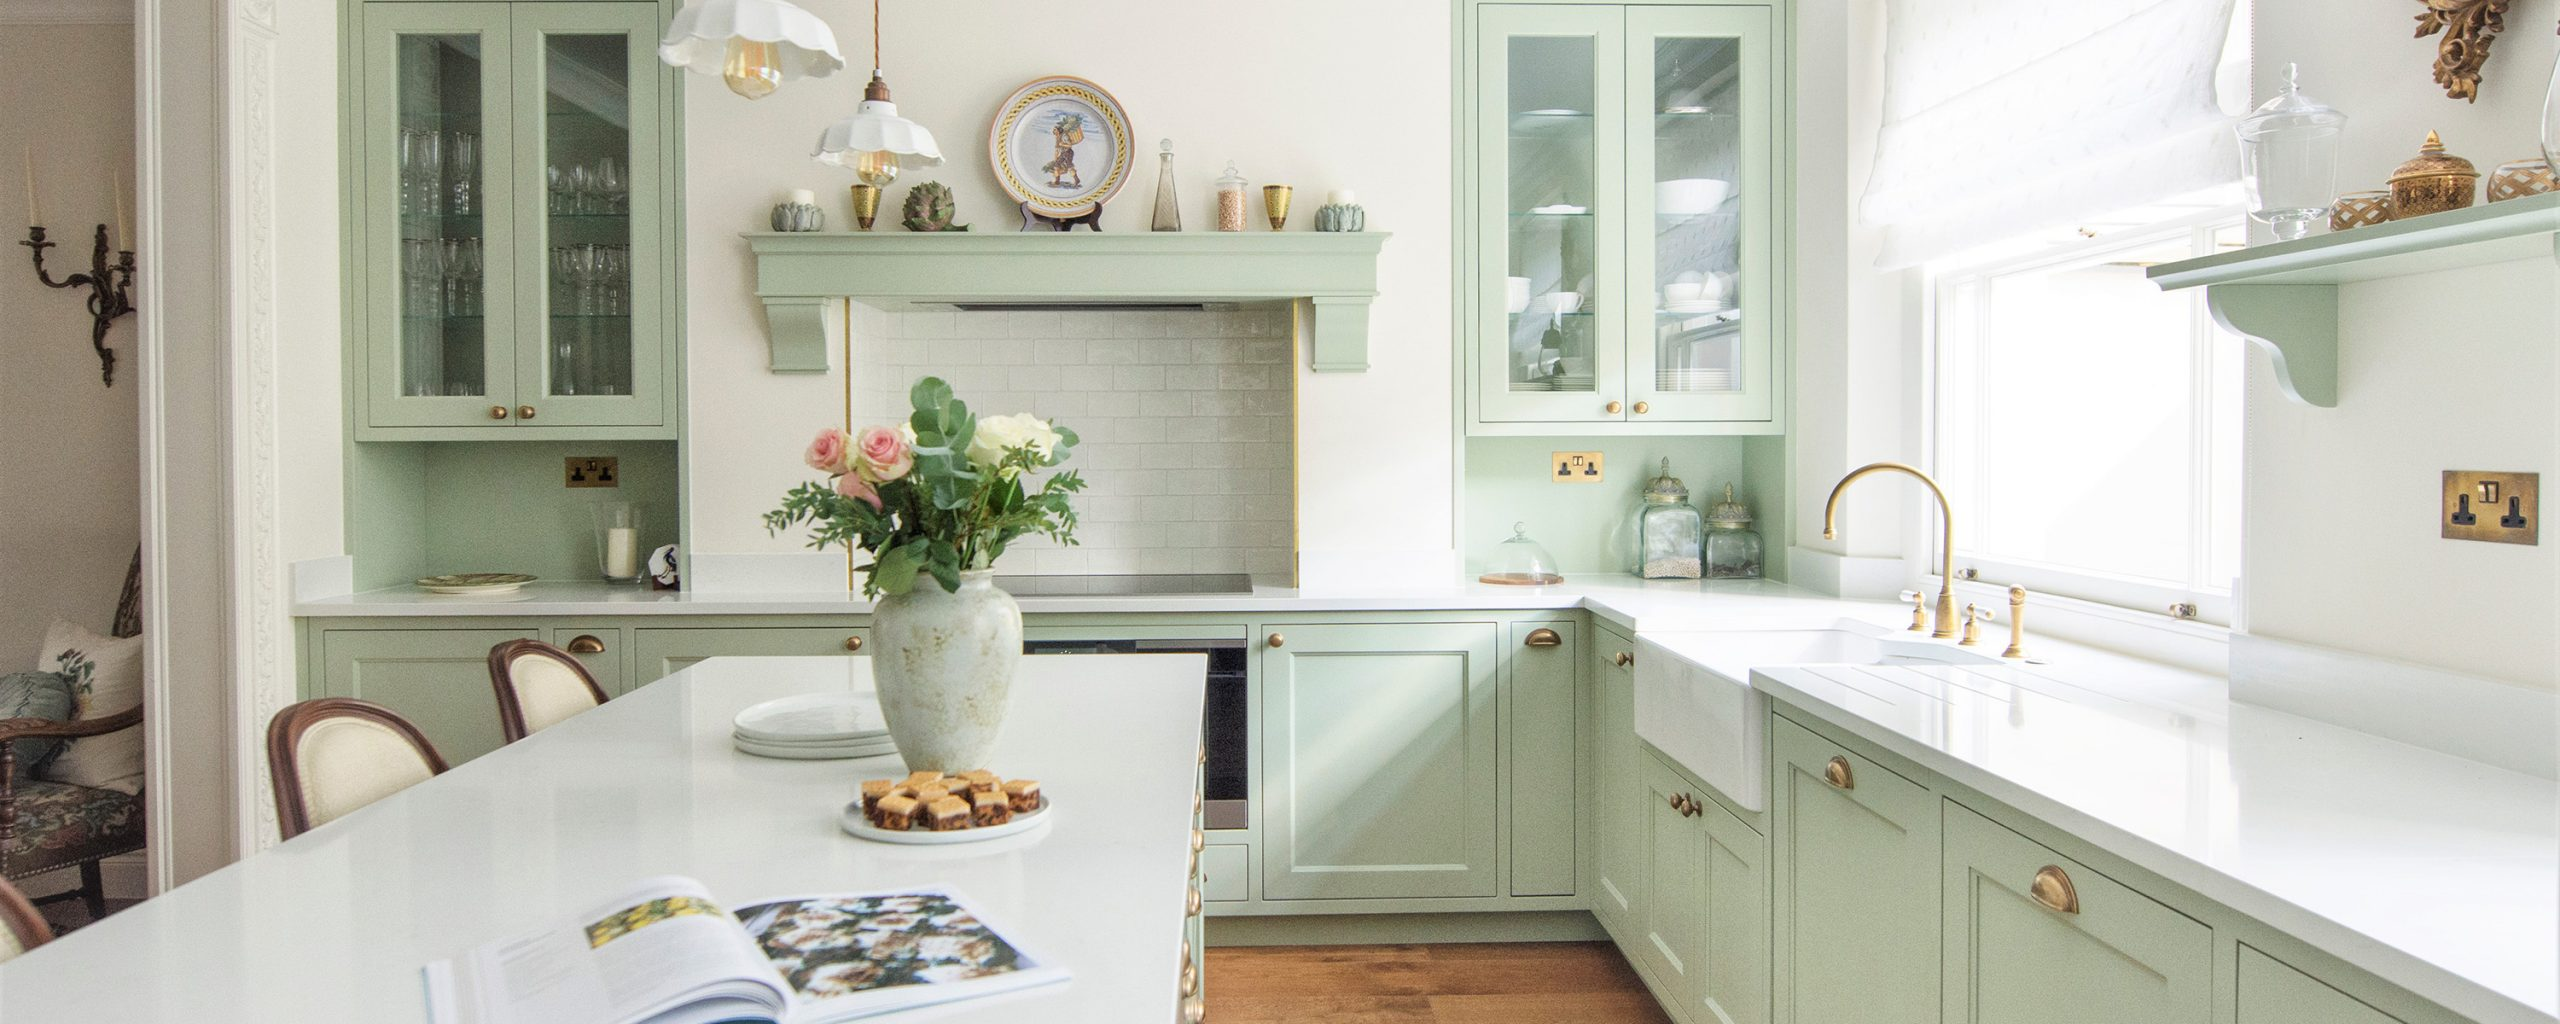 CLIFTON HILL-THE VICTORIAN KITCHEN OF YOUR DREAMS